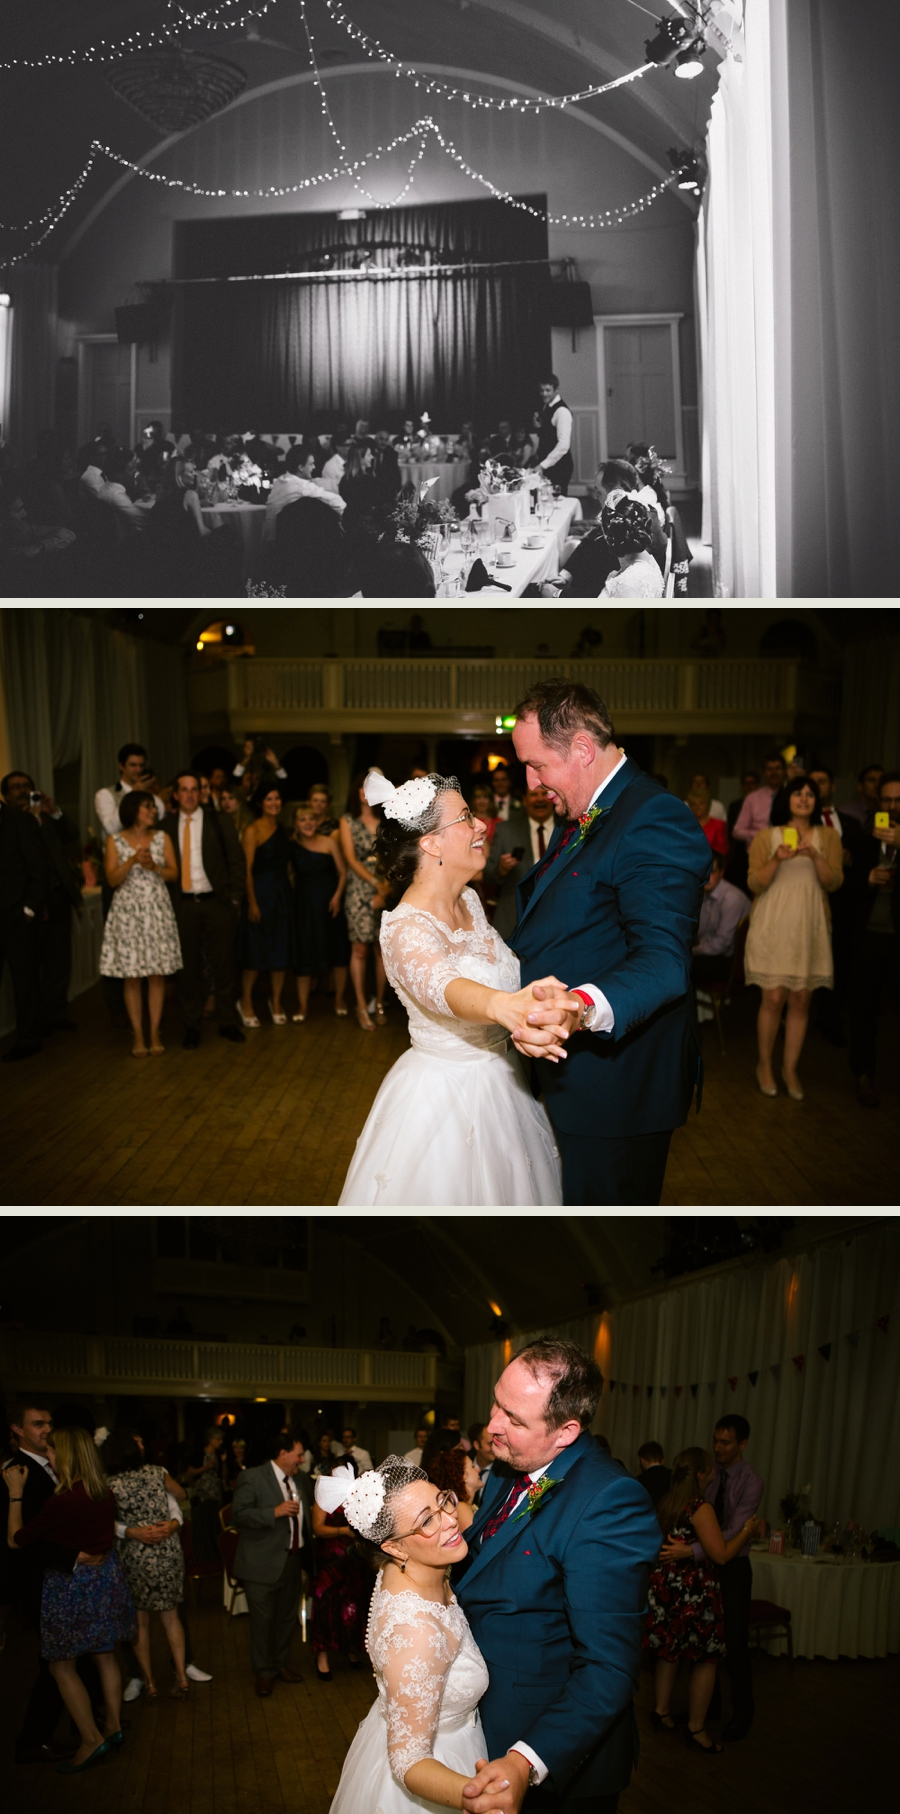 Somerset Wedding Photographer Bowdon Rooms Wedding Emma and Chris_0035.jpg